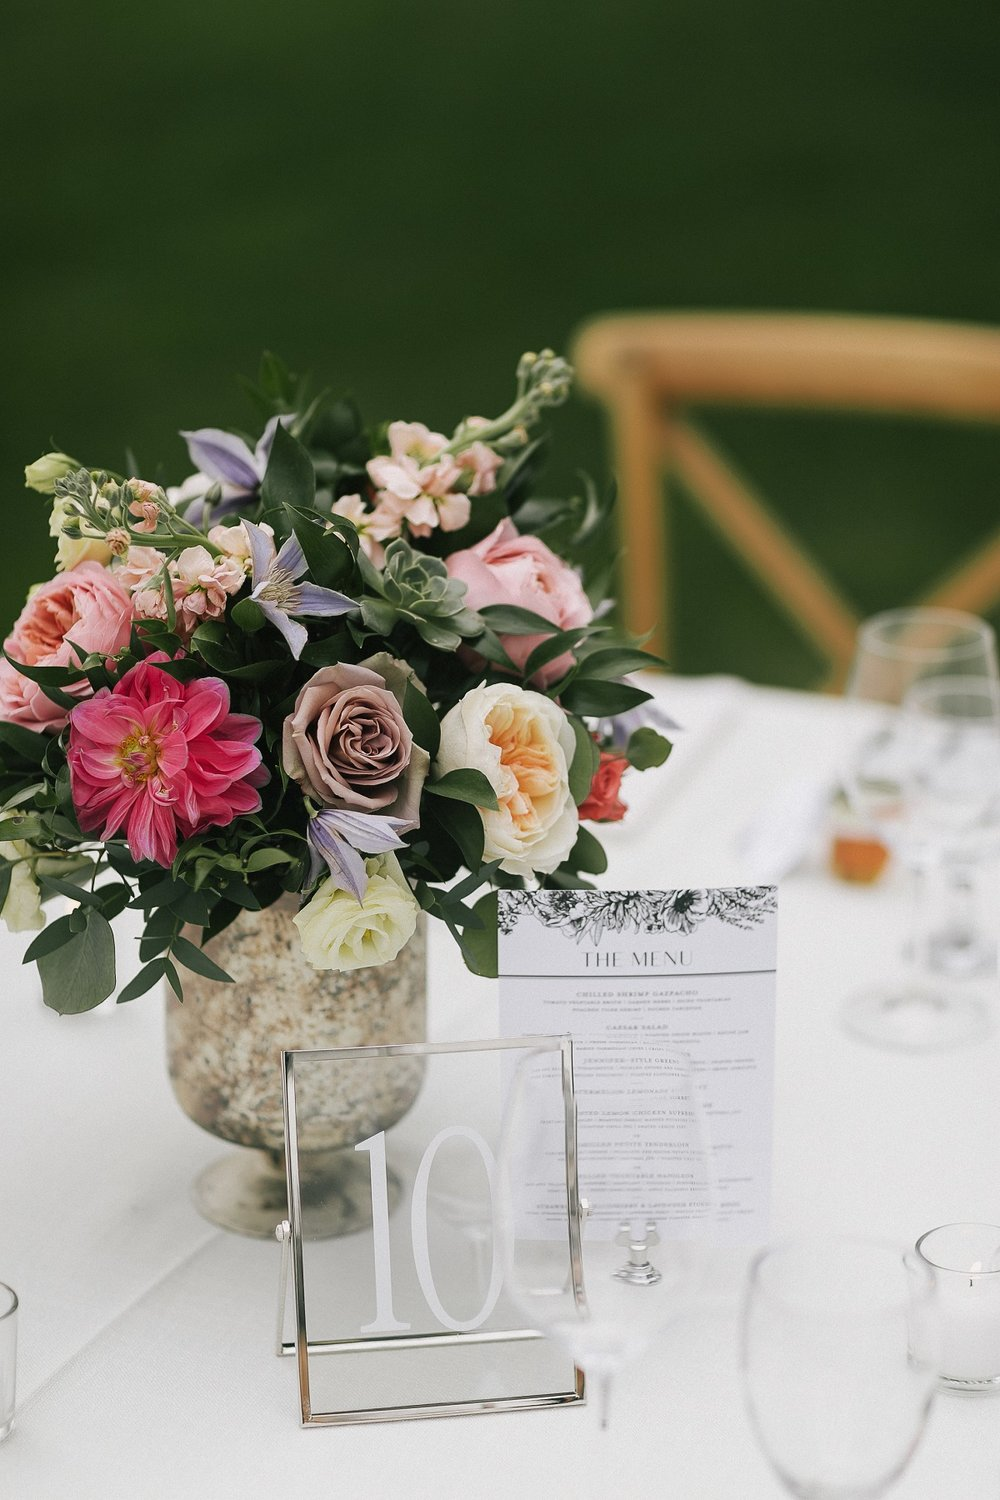 tented-wedding-planner-ancaster-kj-and-co 29.JPG